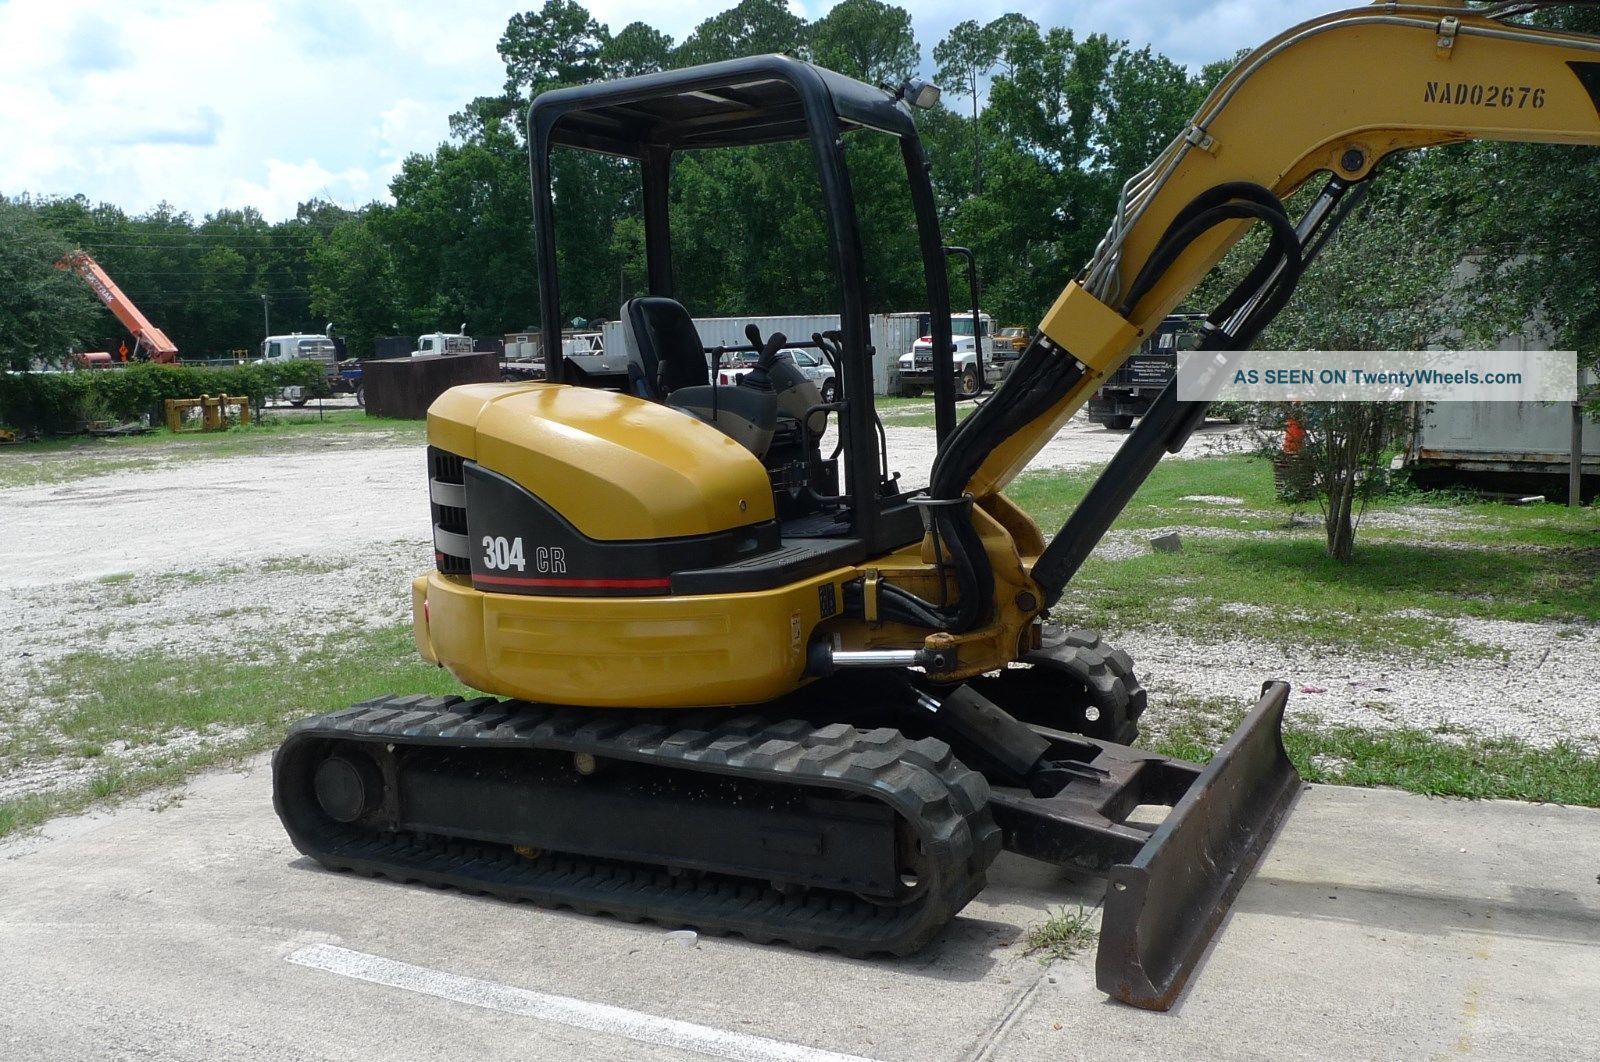 2016 Caterpillar 308c photo - 1